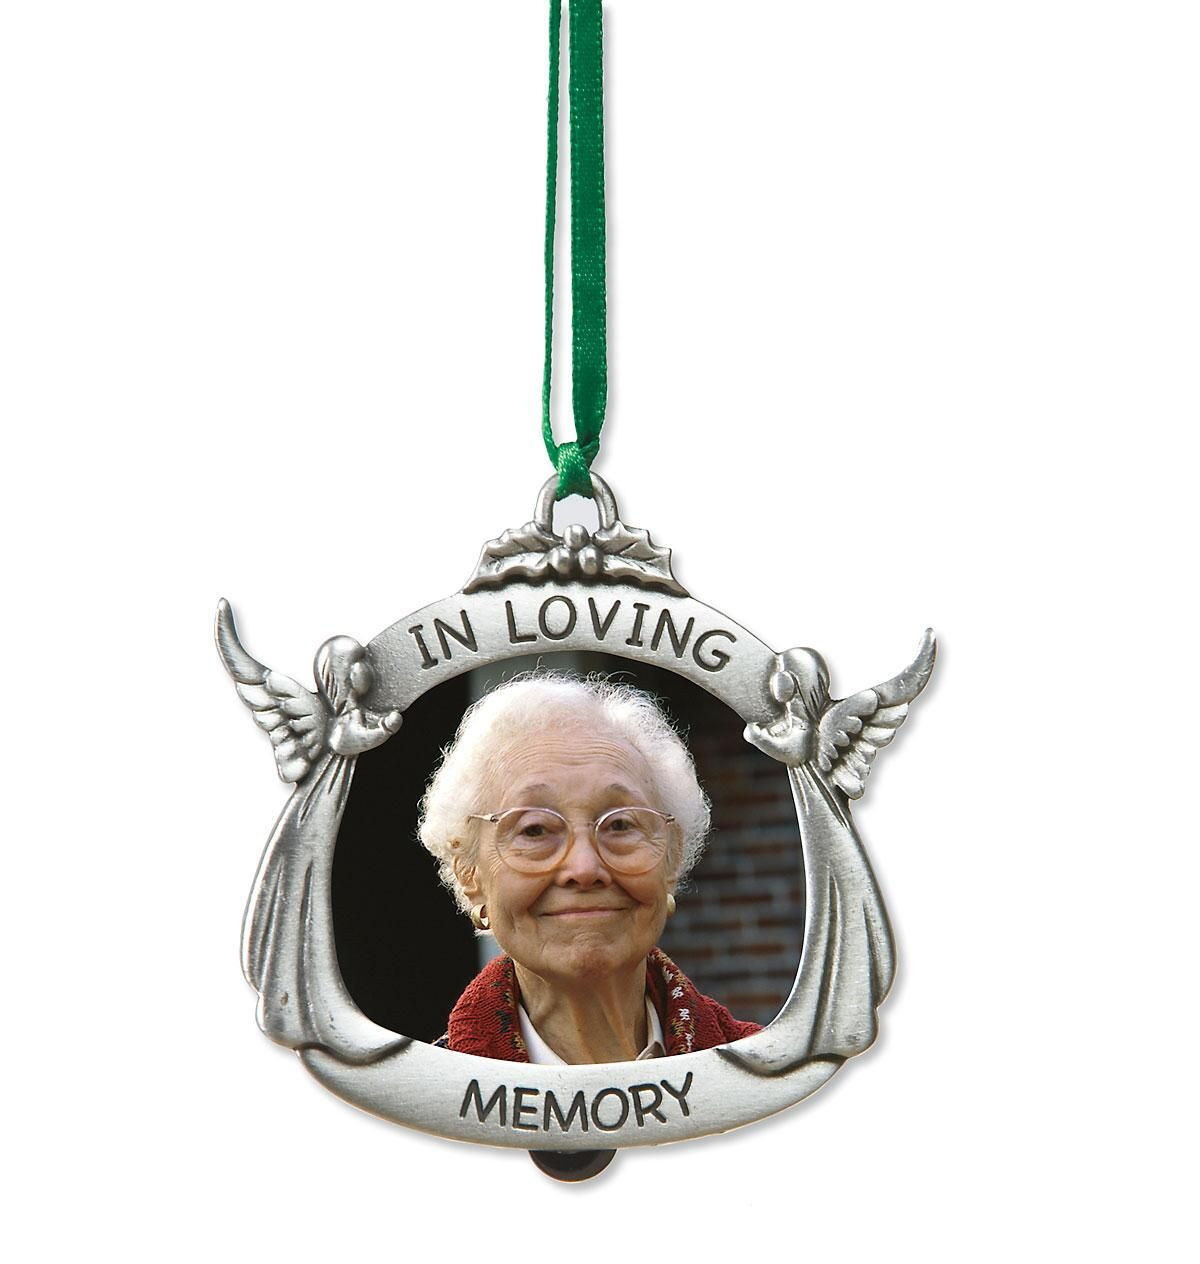 In Loving Memory Photo Frame Personalized Ornaments